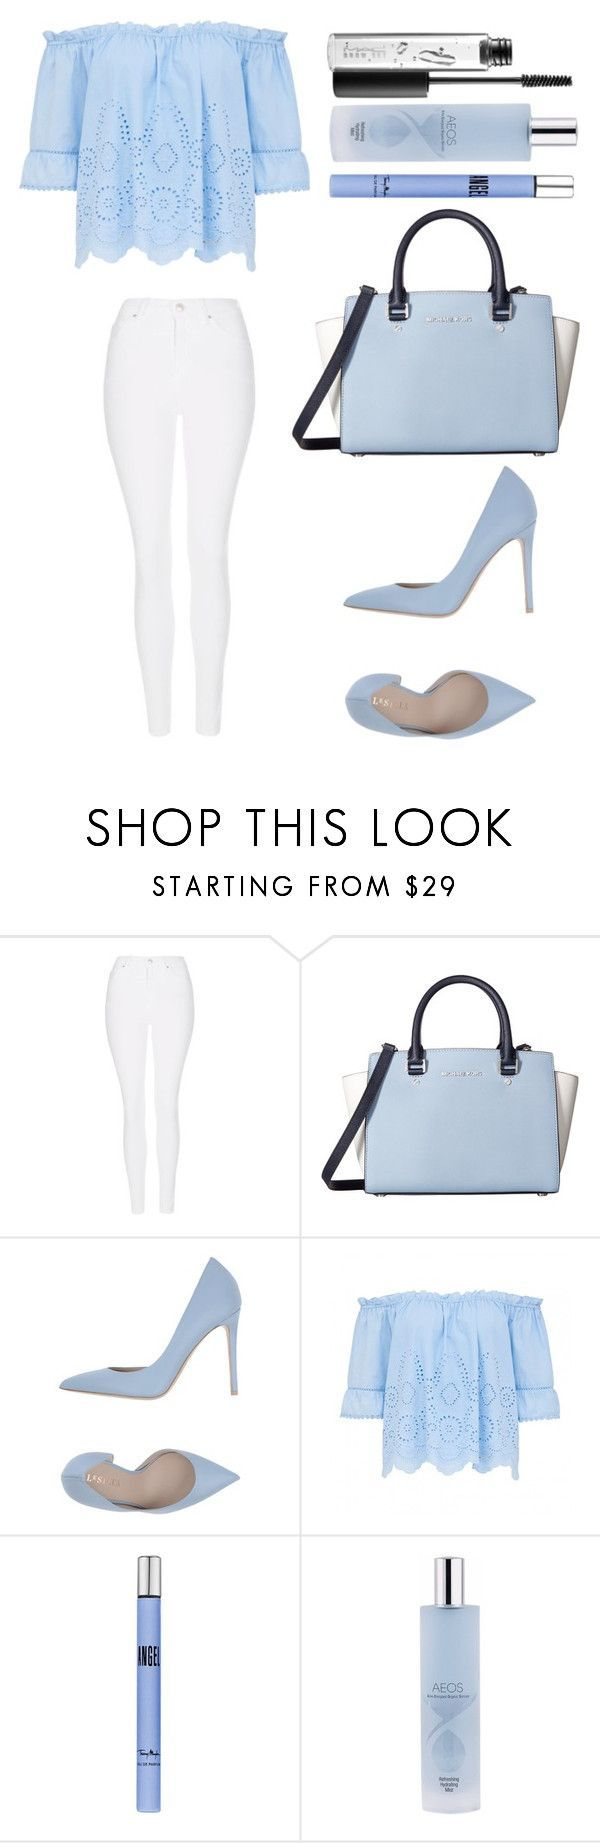 """Untitled #2269"" by ordinarydays ❤ liked on Polyvore featuring Topshop, MICHAEL Michael Kors, Le Silla, Thierry Mugler, AEOS and MAC Cosmetics"